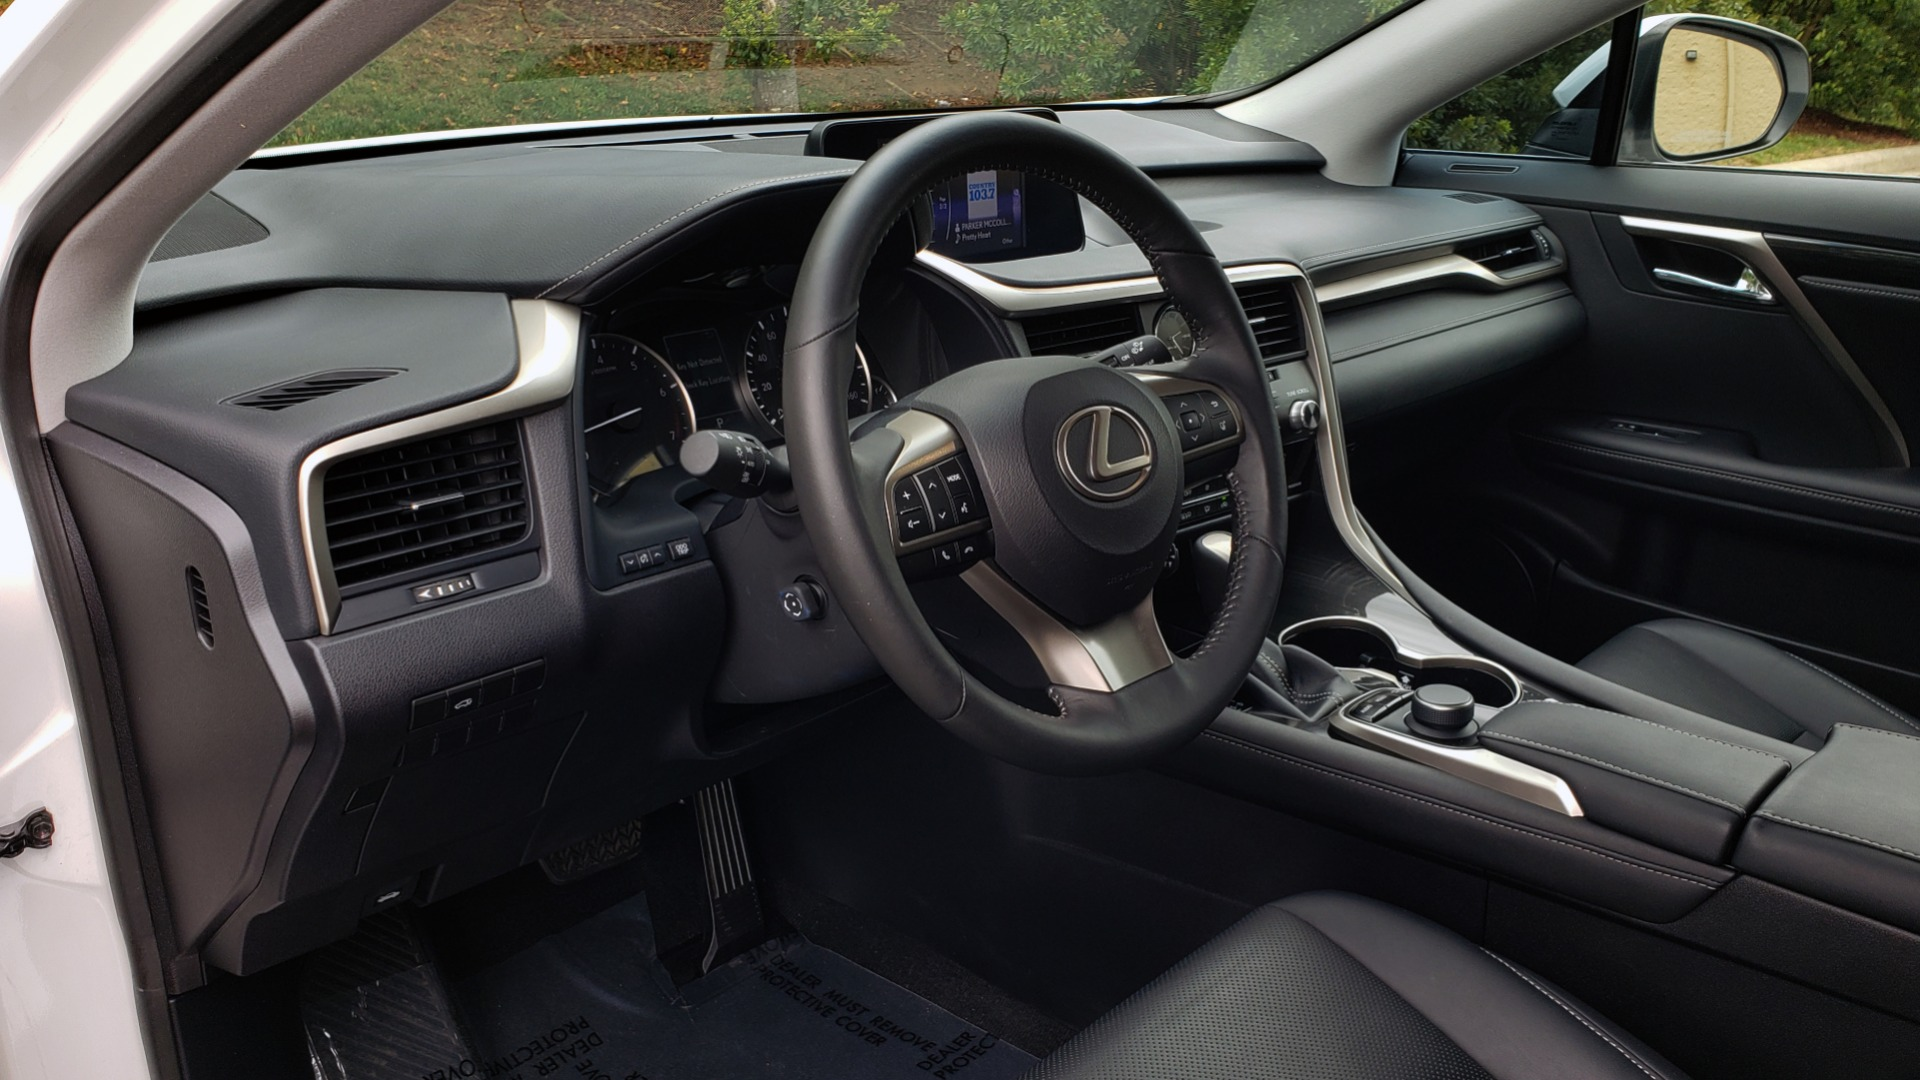 Used 2016 Lexus RX 350 FWD / 4-DR / 3.5L V6 / 8-SPD AUTO / LEATHER / REARVIEW for sale Sold at Formula Imports in Charlotte NC 28227 39